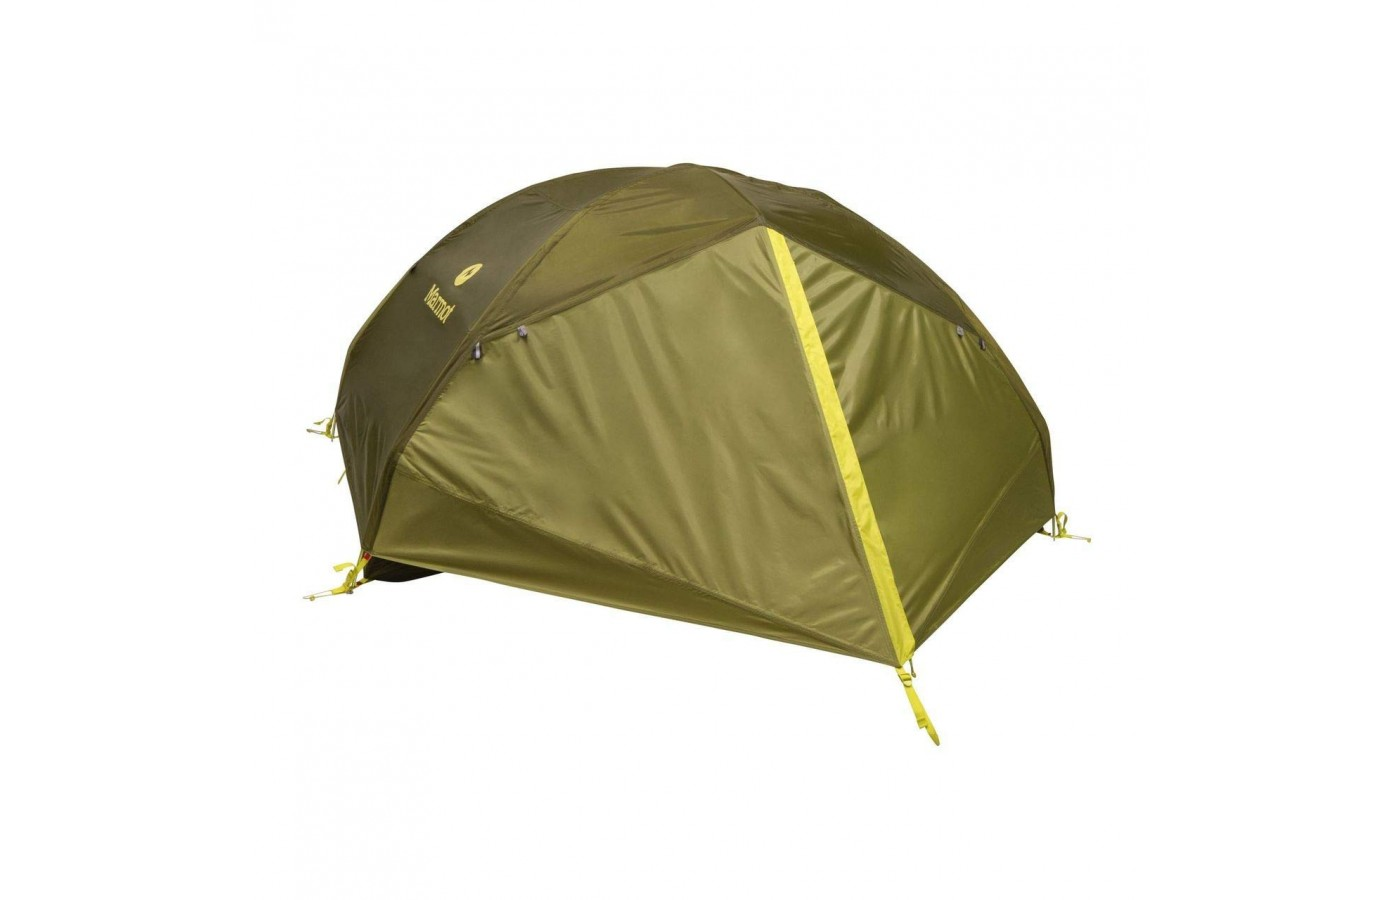 The Tungsten 2P tent is available in a vibrant orange color and updated light green color.